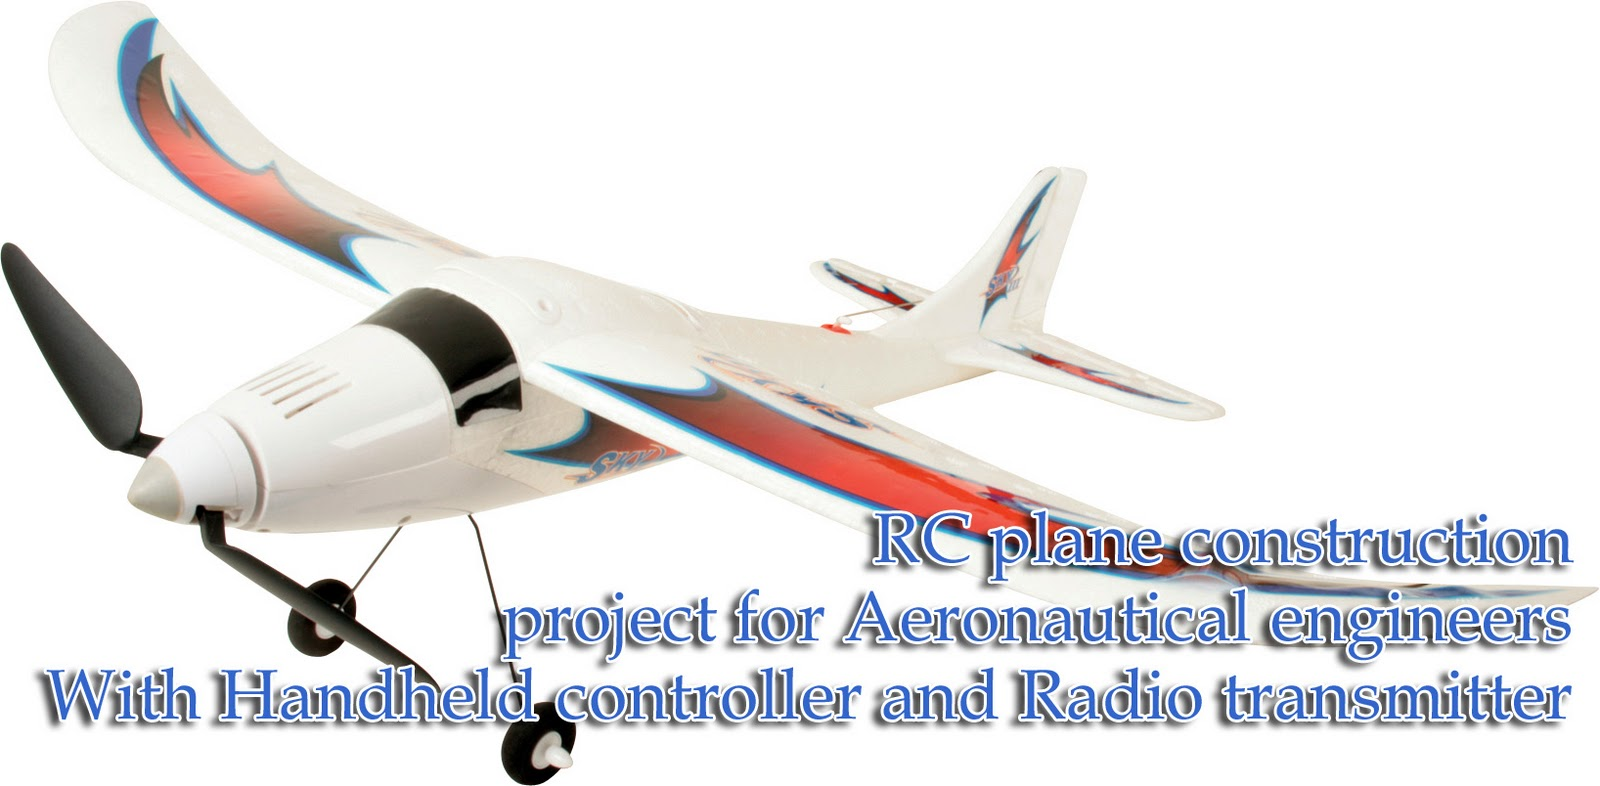 RC plane construction: BE projects for aeronautical engineering